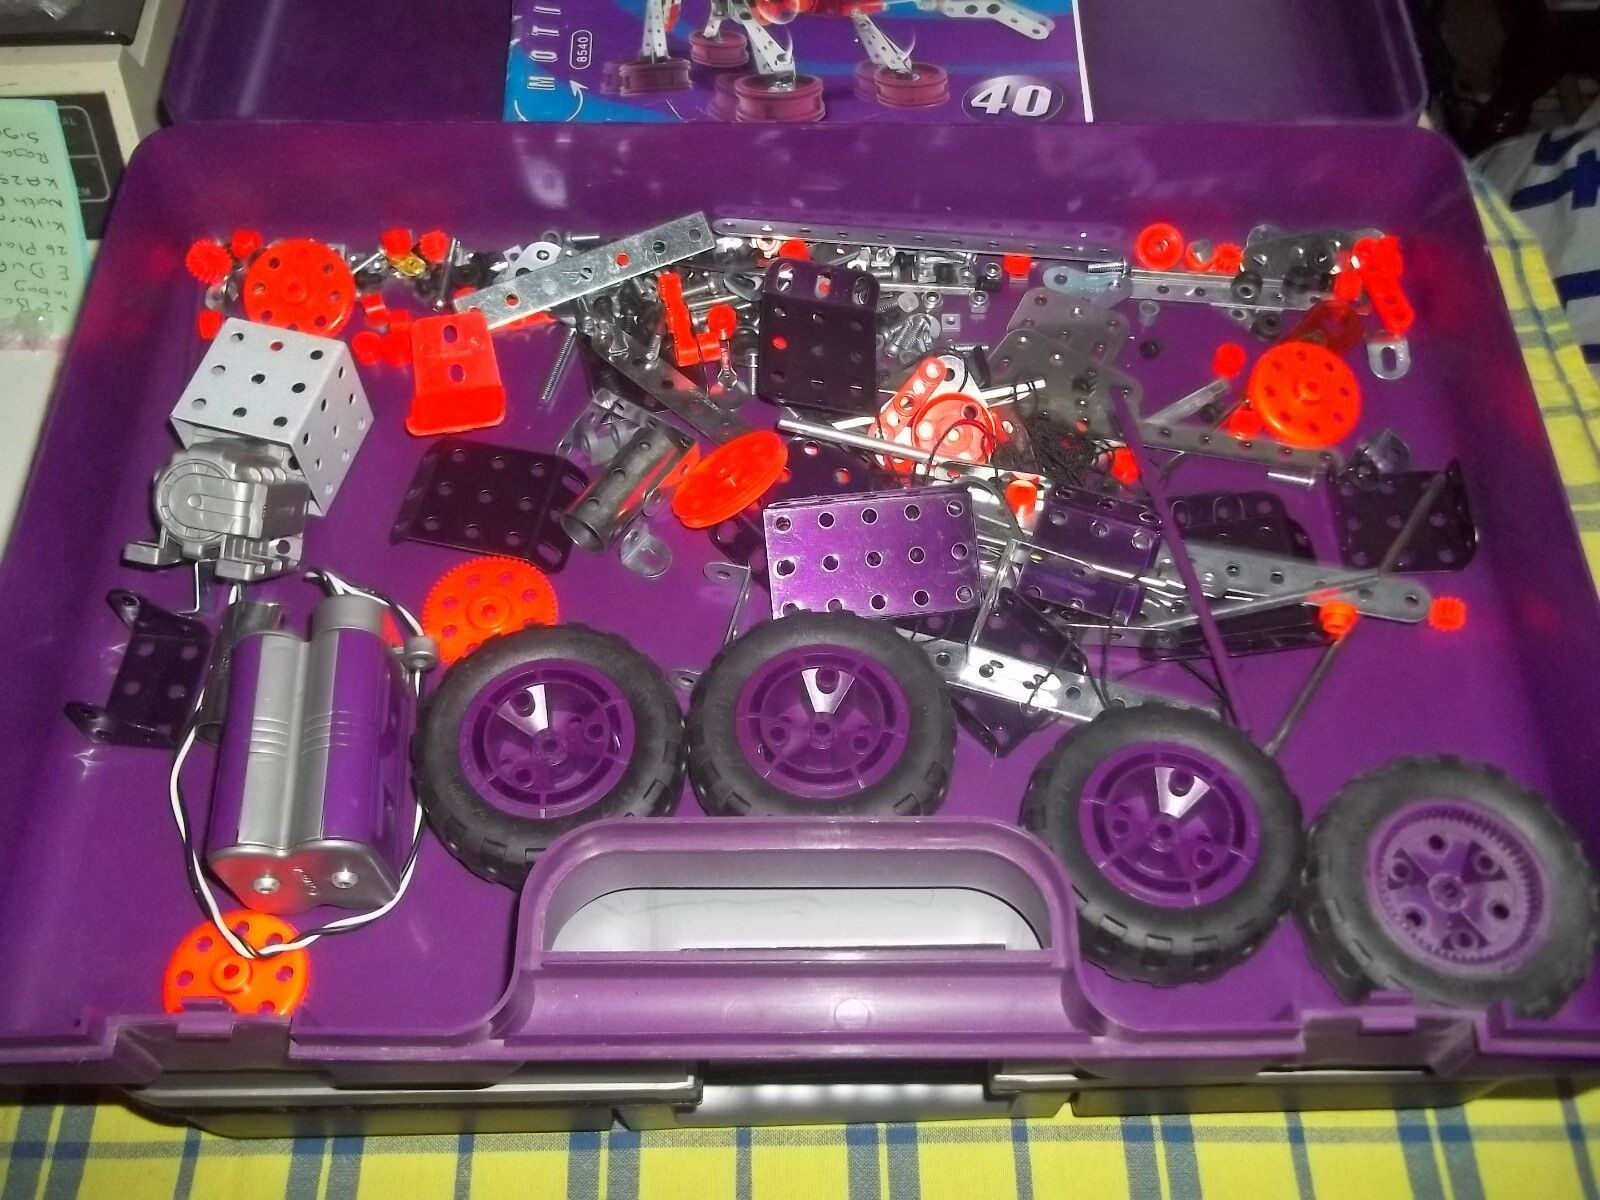 Large collection of Meccano including motor, wheels & a nice purple storage box